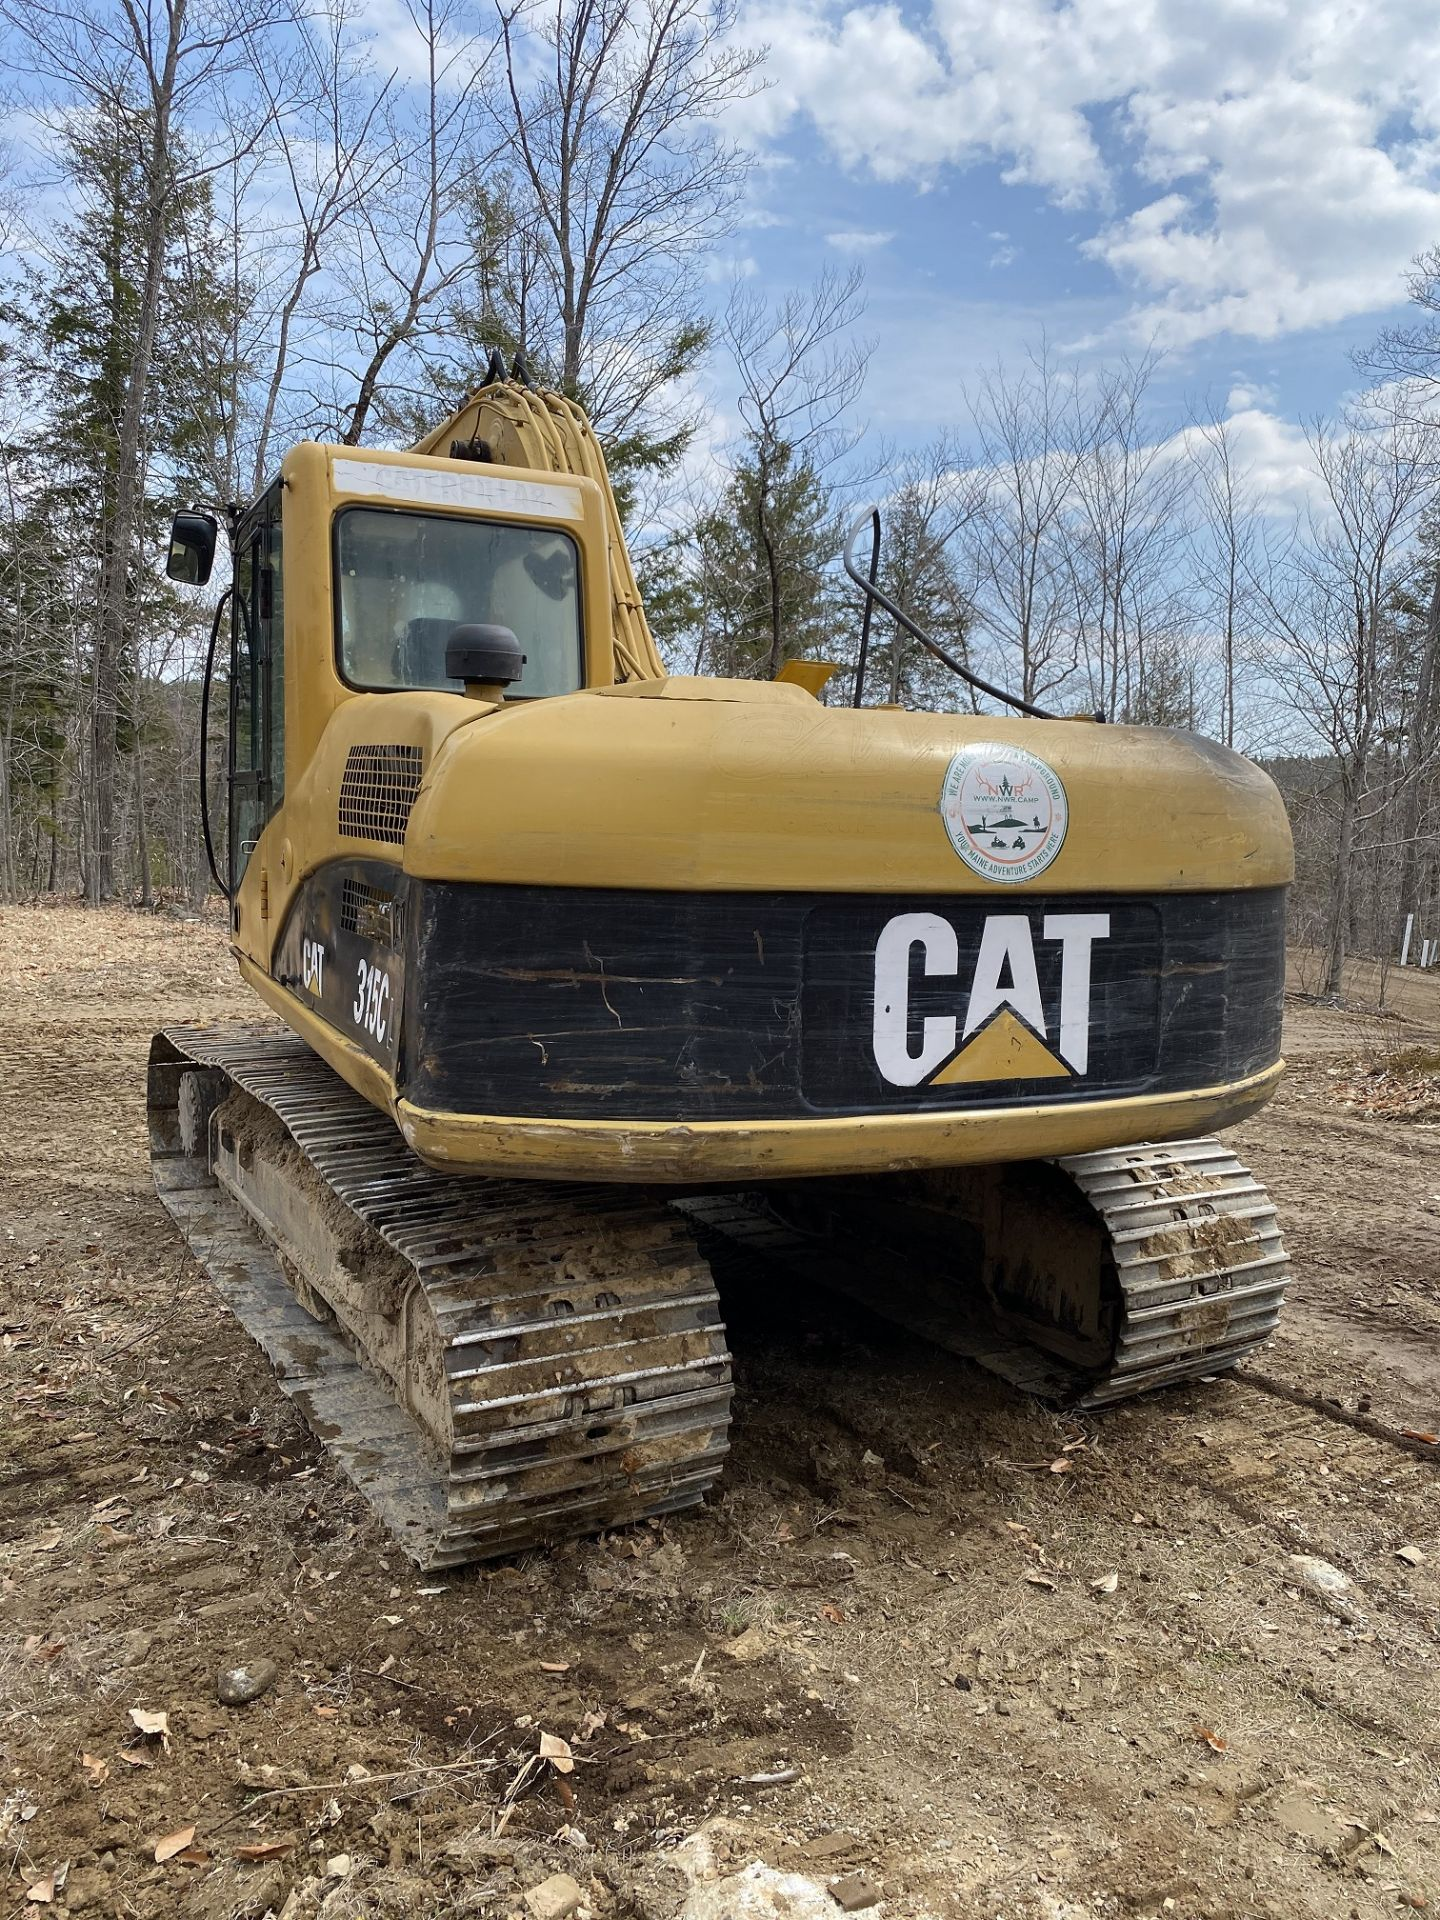 Caterpillar Excavator 315CL 1YD Bucket Stationary w/Thumb, Hrs: 8,003, 3YR Old Swing Motor Bushings, - Image 5 of 10